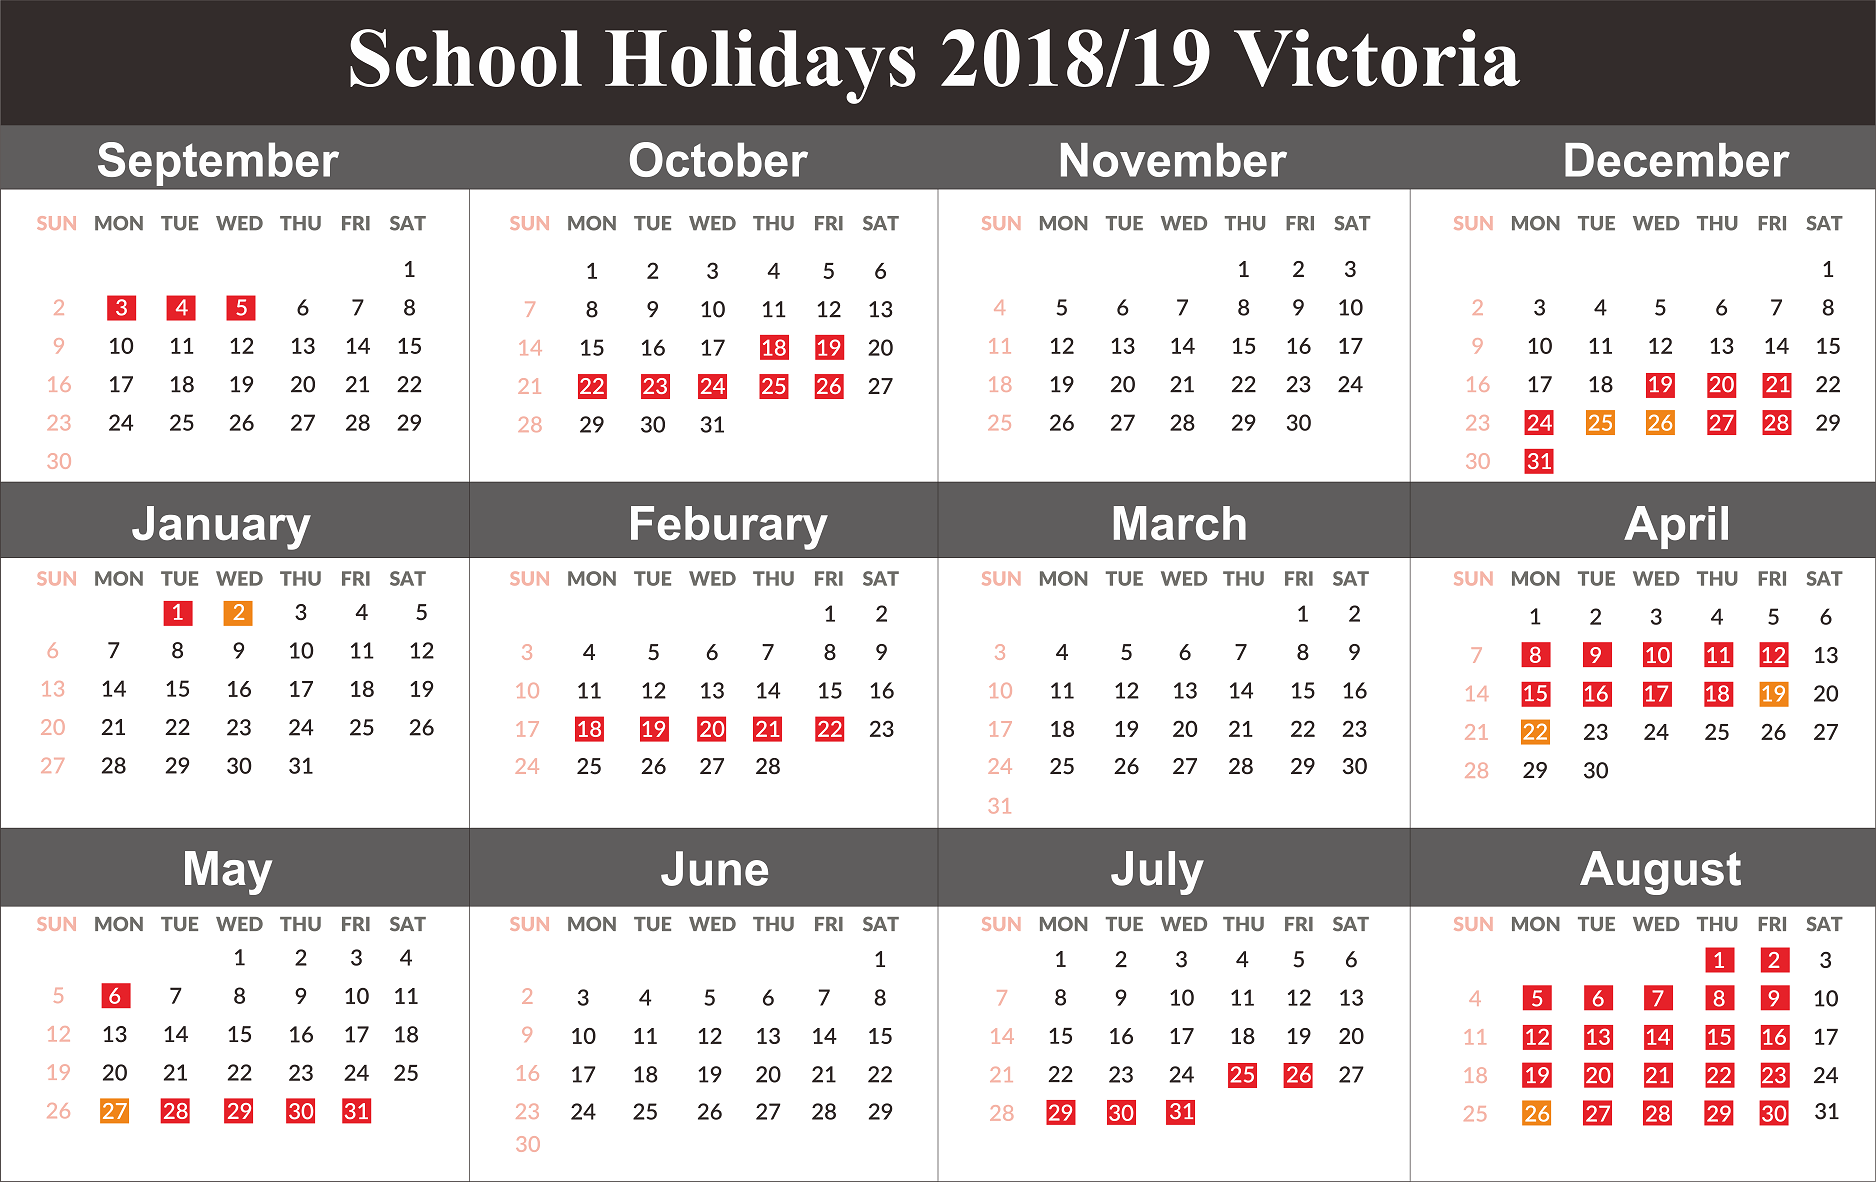 2019 School Year Calendar Victoria With Free Holidays Templates April 2018